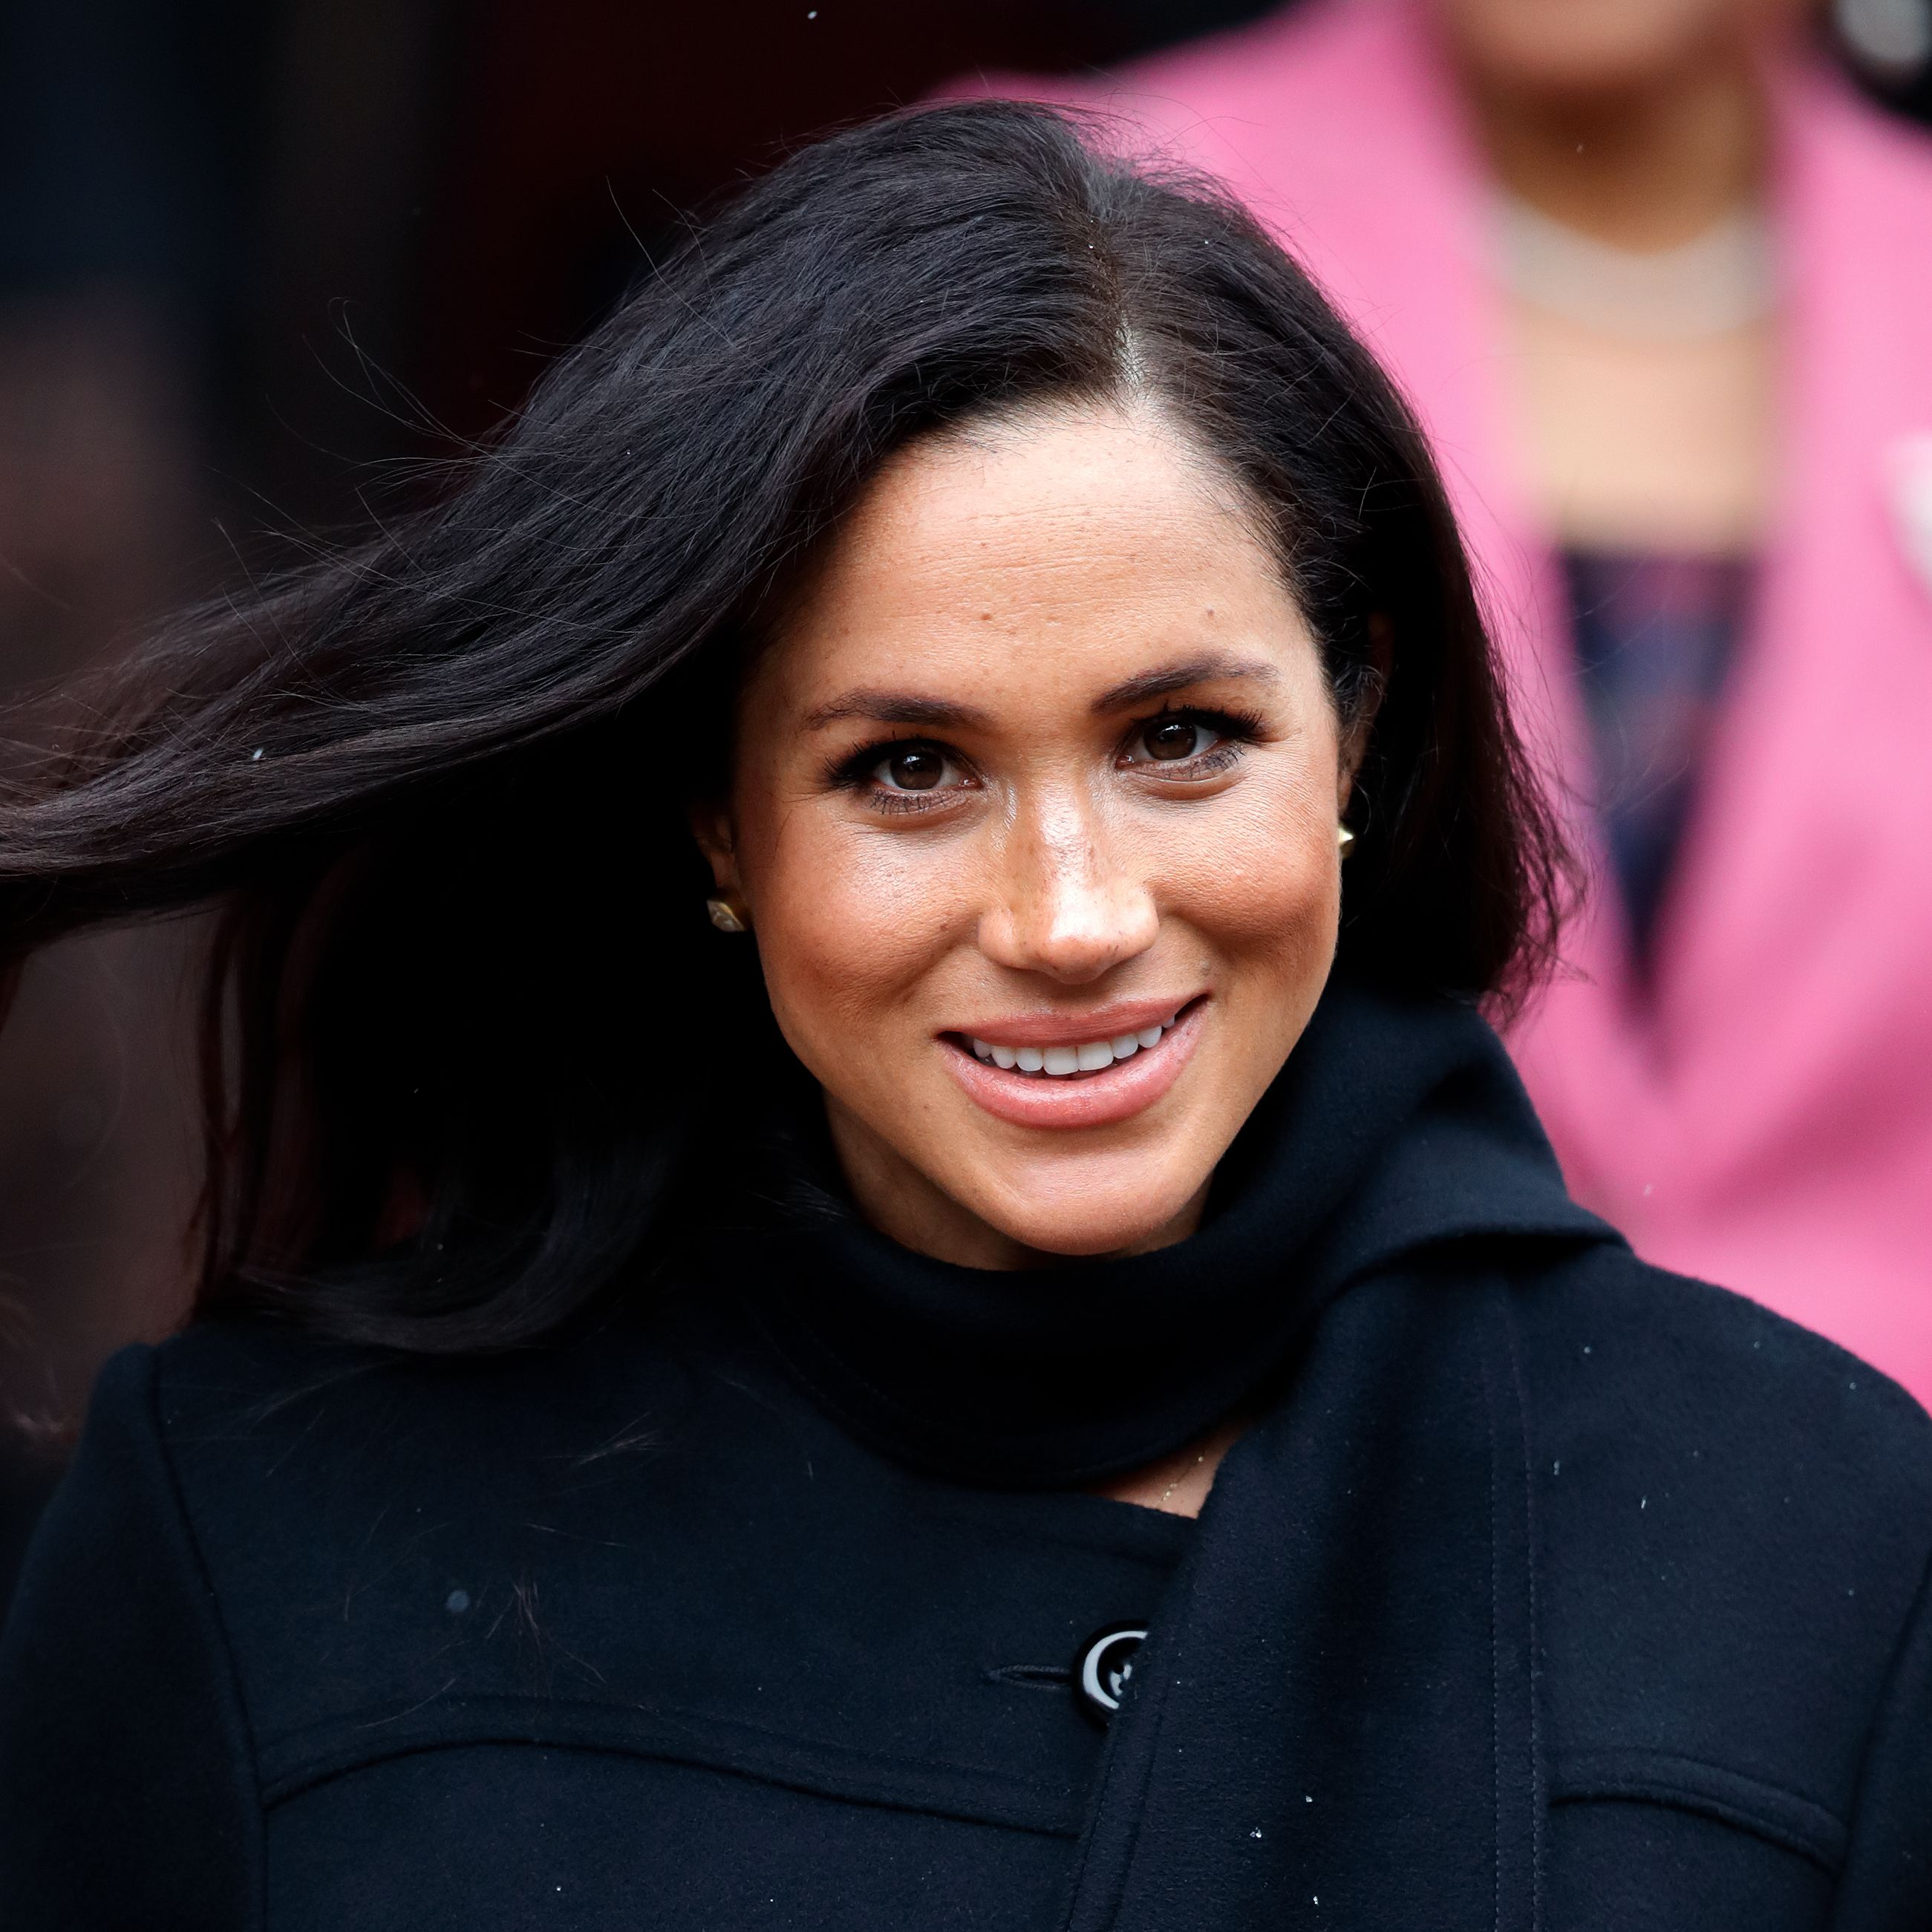 Meghan Markle Might Be Returning to Your TV Screens in the Near Future